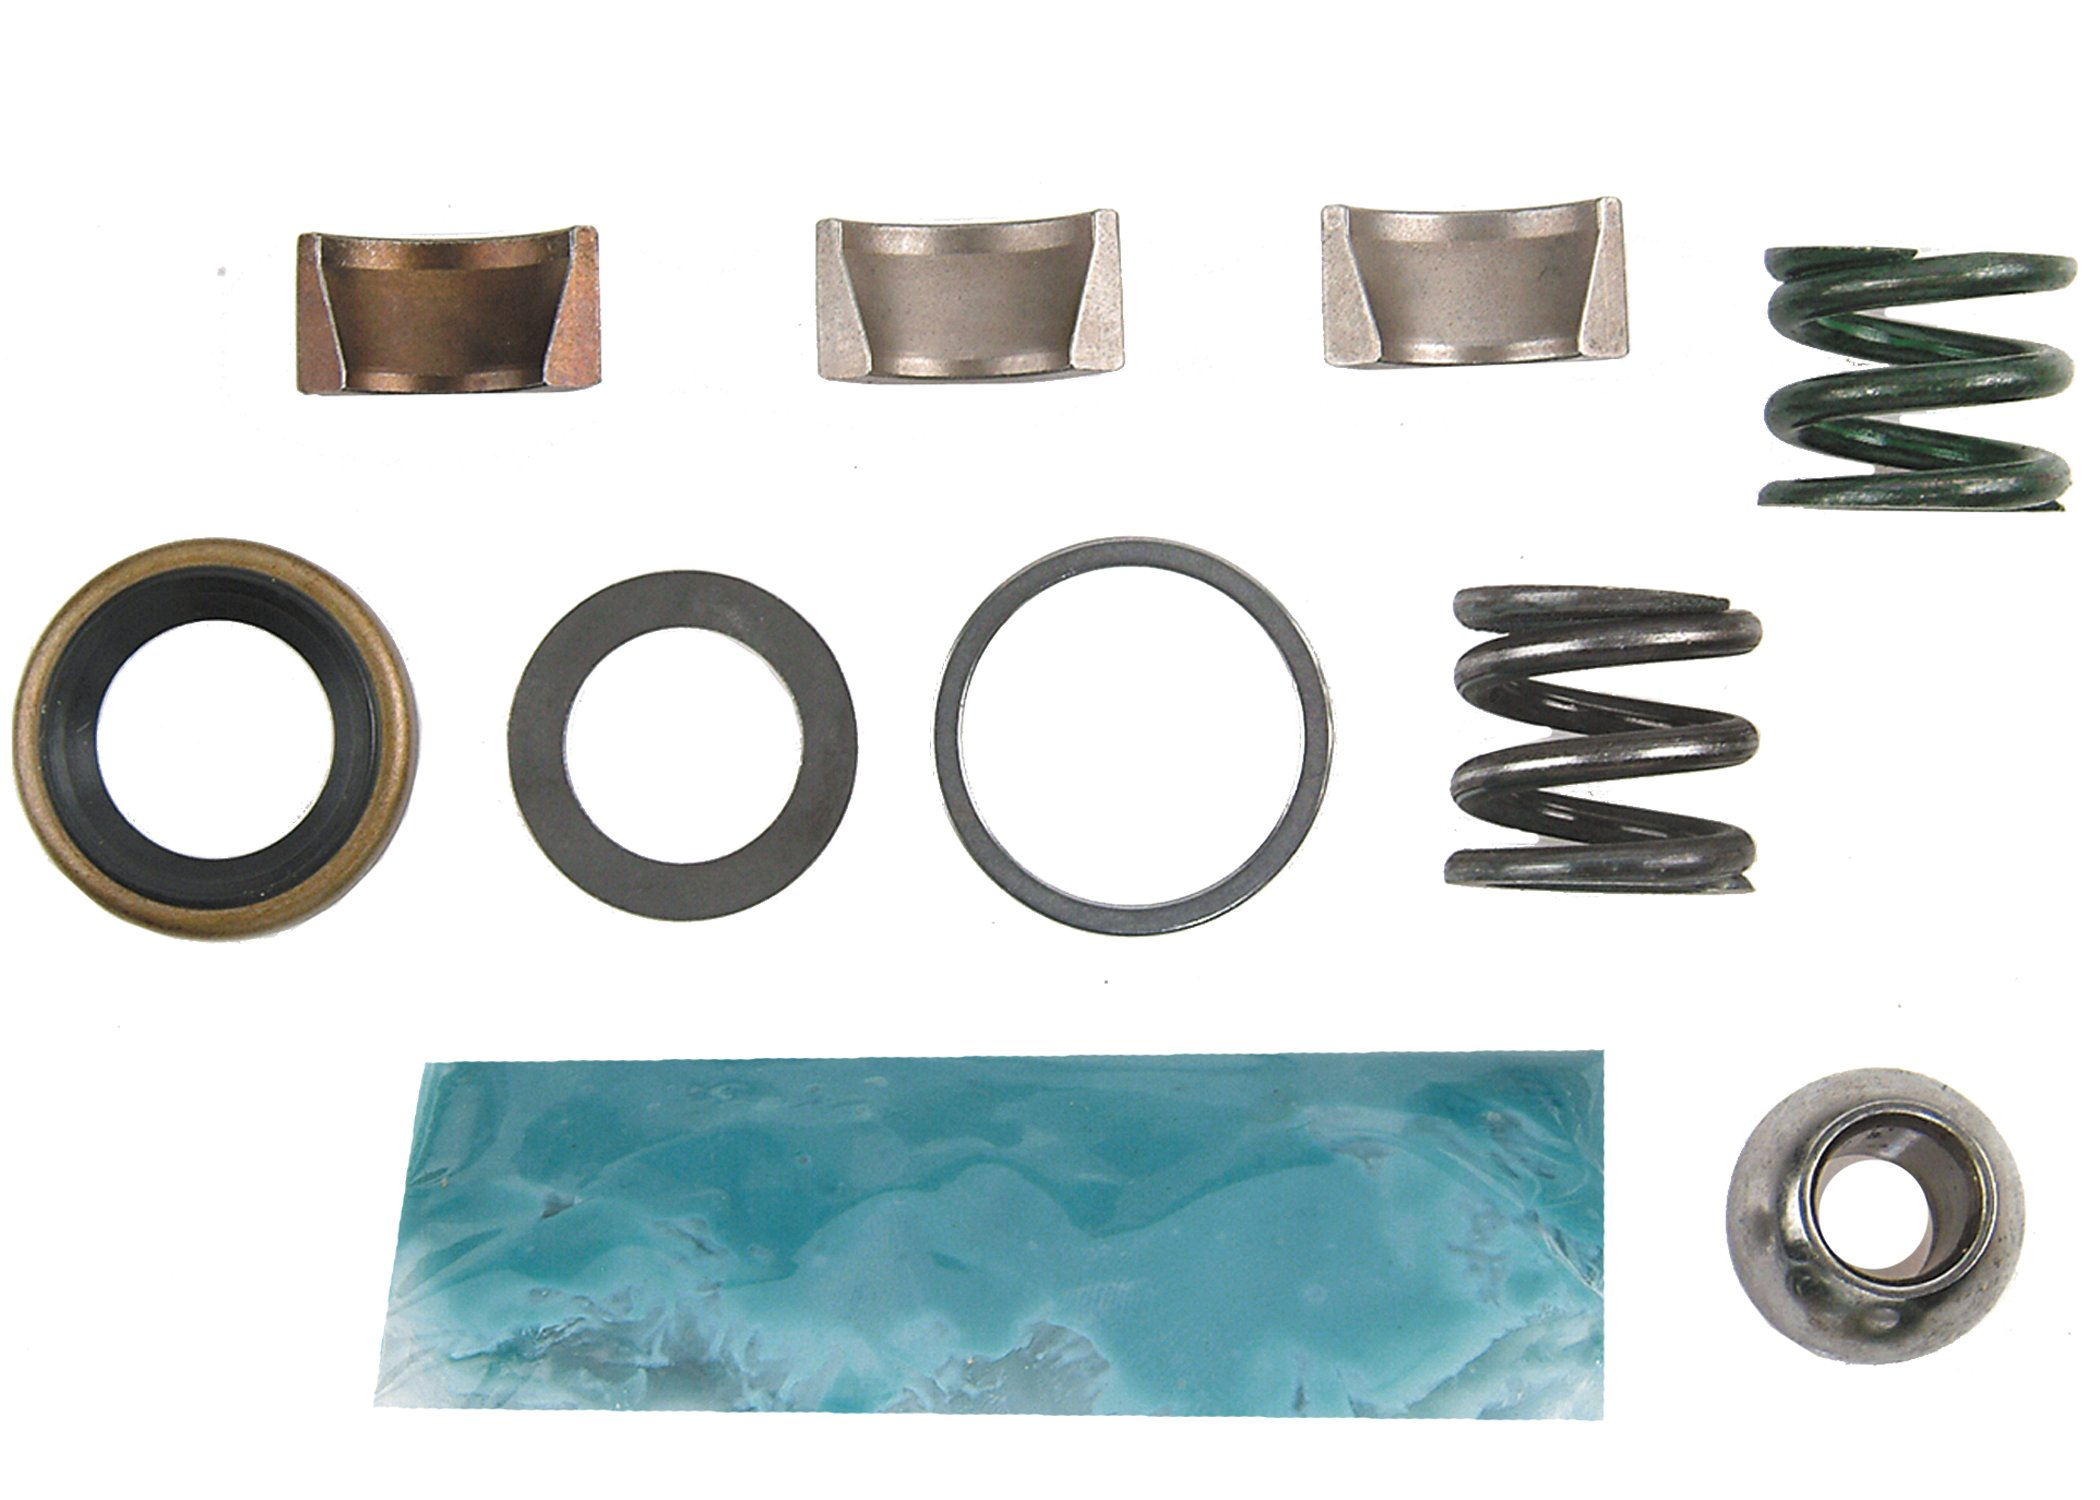 ACDelco 45U0750 Professional U-Joint Ball Seat Kit with Sleeves, Springs, Seal, Washers, Grommet, and Grease